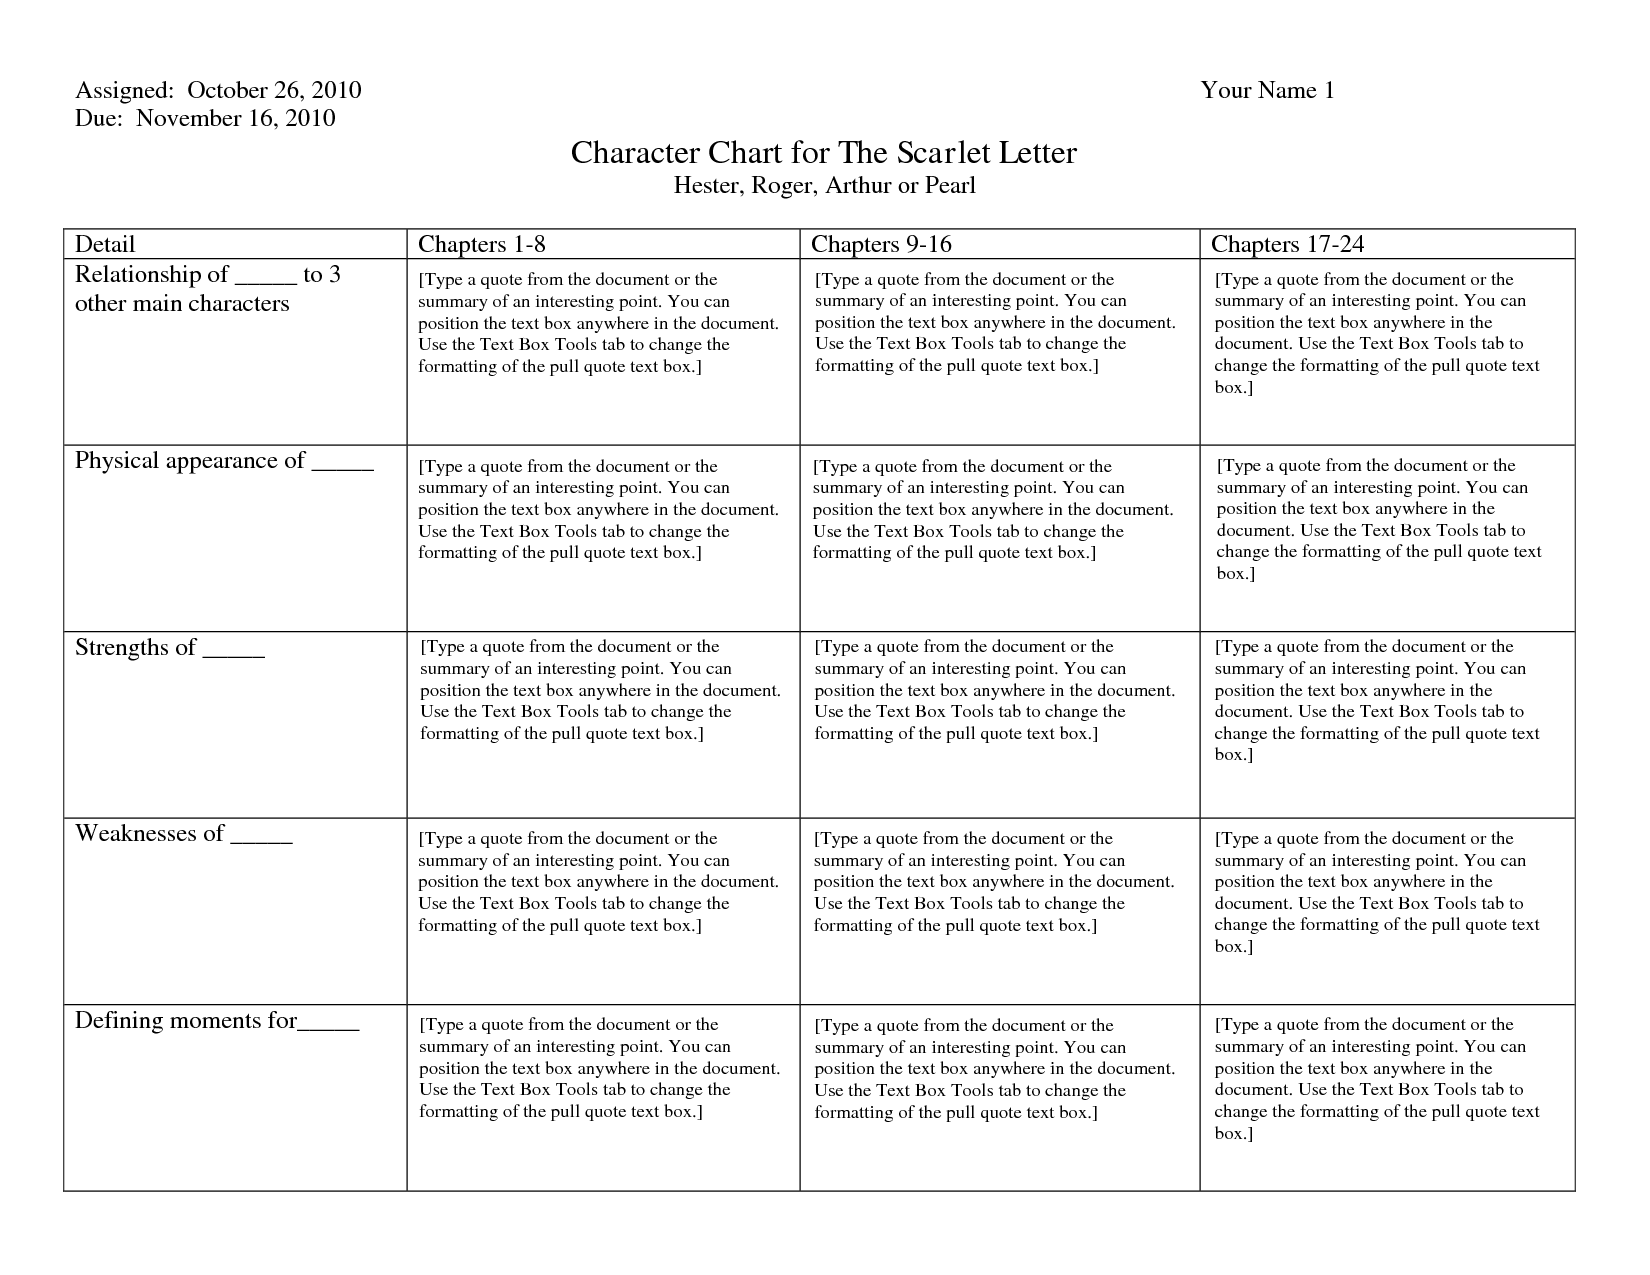 an analysis of the symbolism in the story of the scarlet letter Every chapter in the scarlet letter has symbols displayed through characterization, setting, colors, and light perhaps the most dramatic chapters using these techniques are the chapters comprising the three scaffold scenes and the meeting in the forest between hester and dimmesdale.